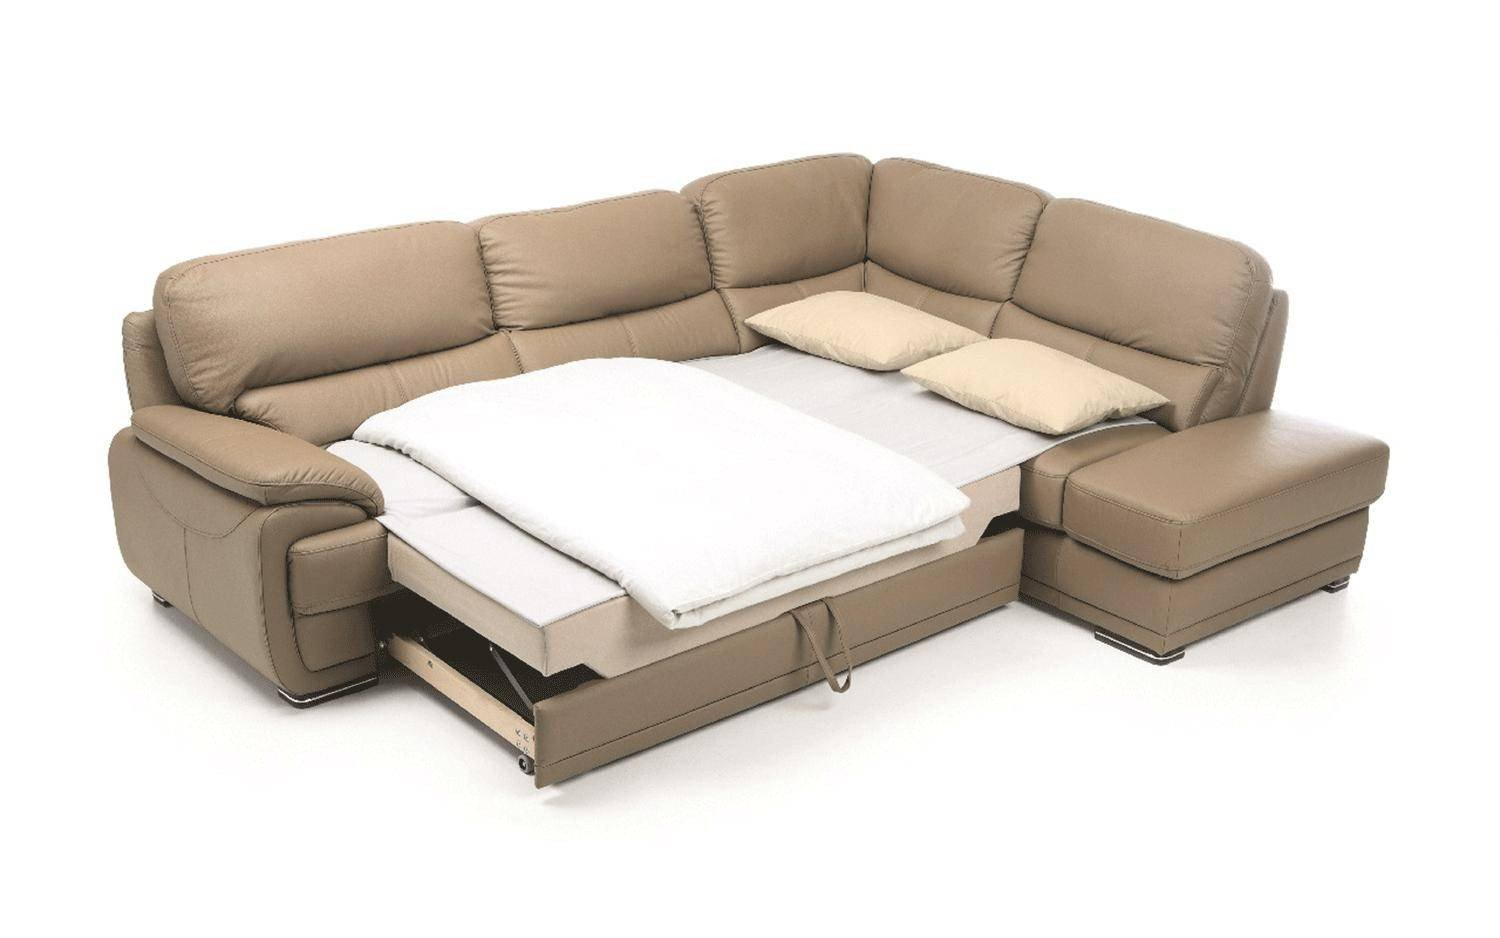 Tan and White Bedroom Inspirational Chic Beige Full Leather Sectional sofa Bed W Storage Modern